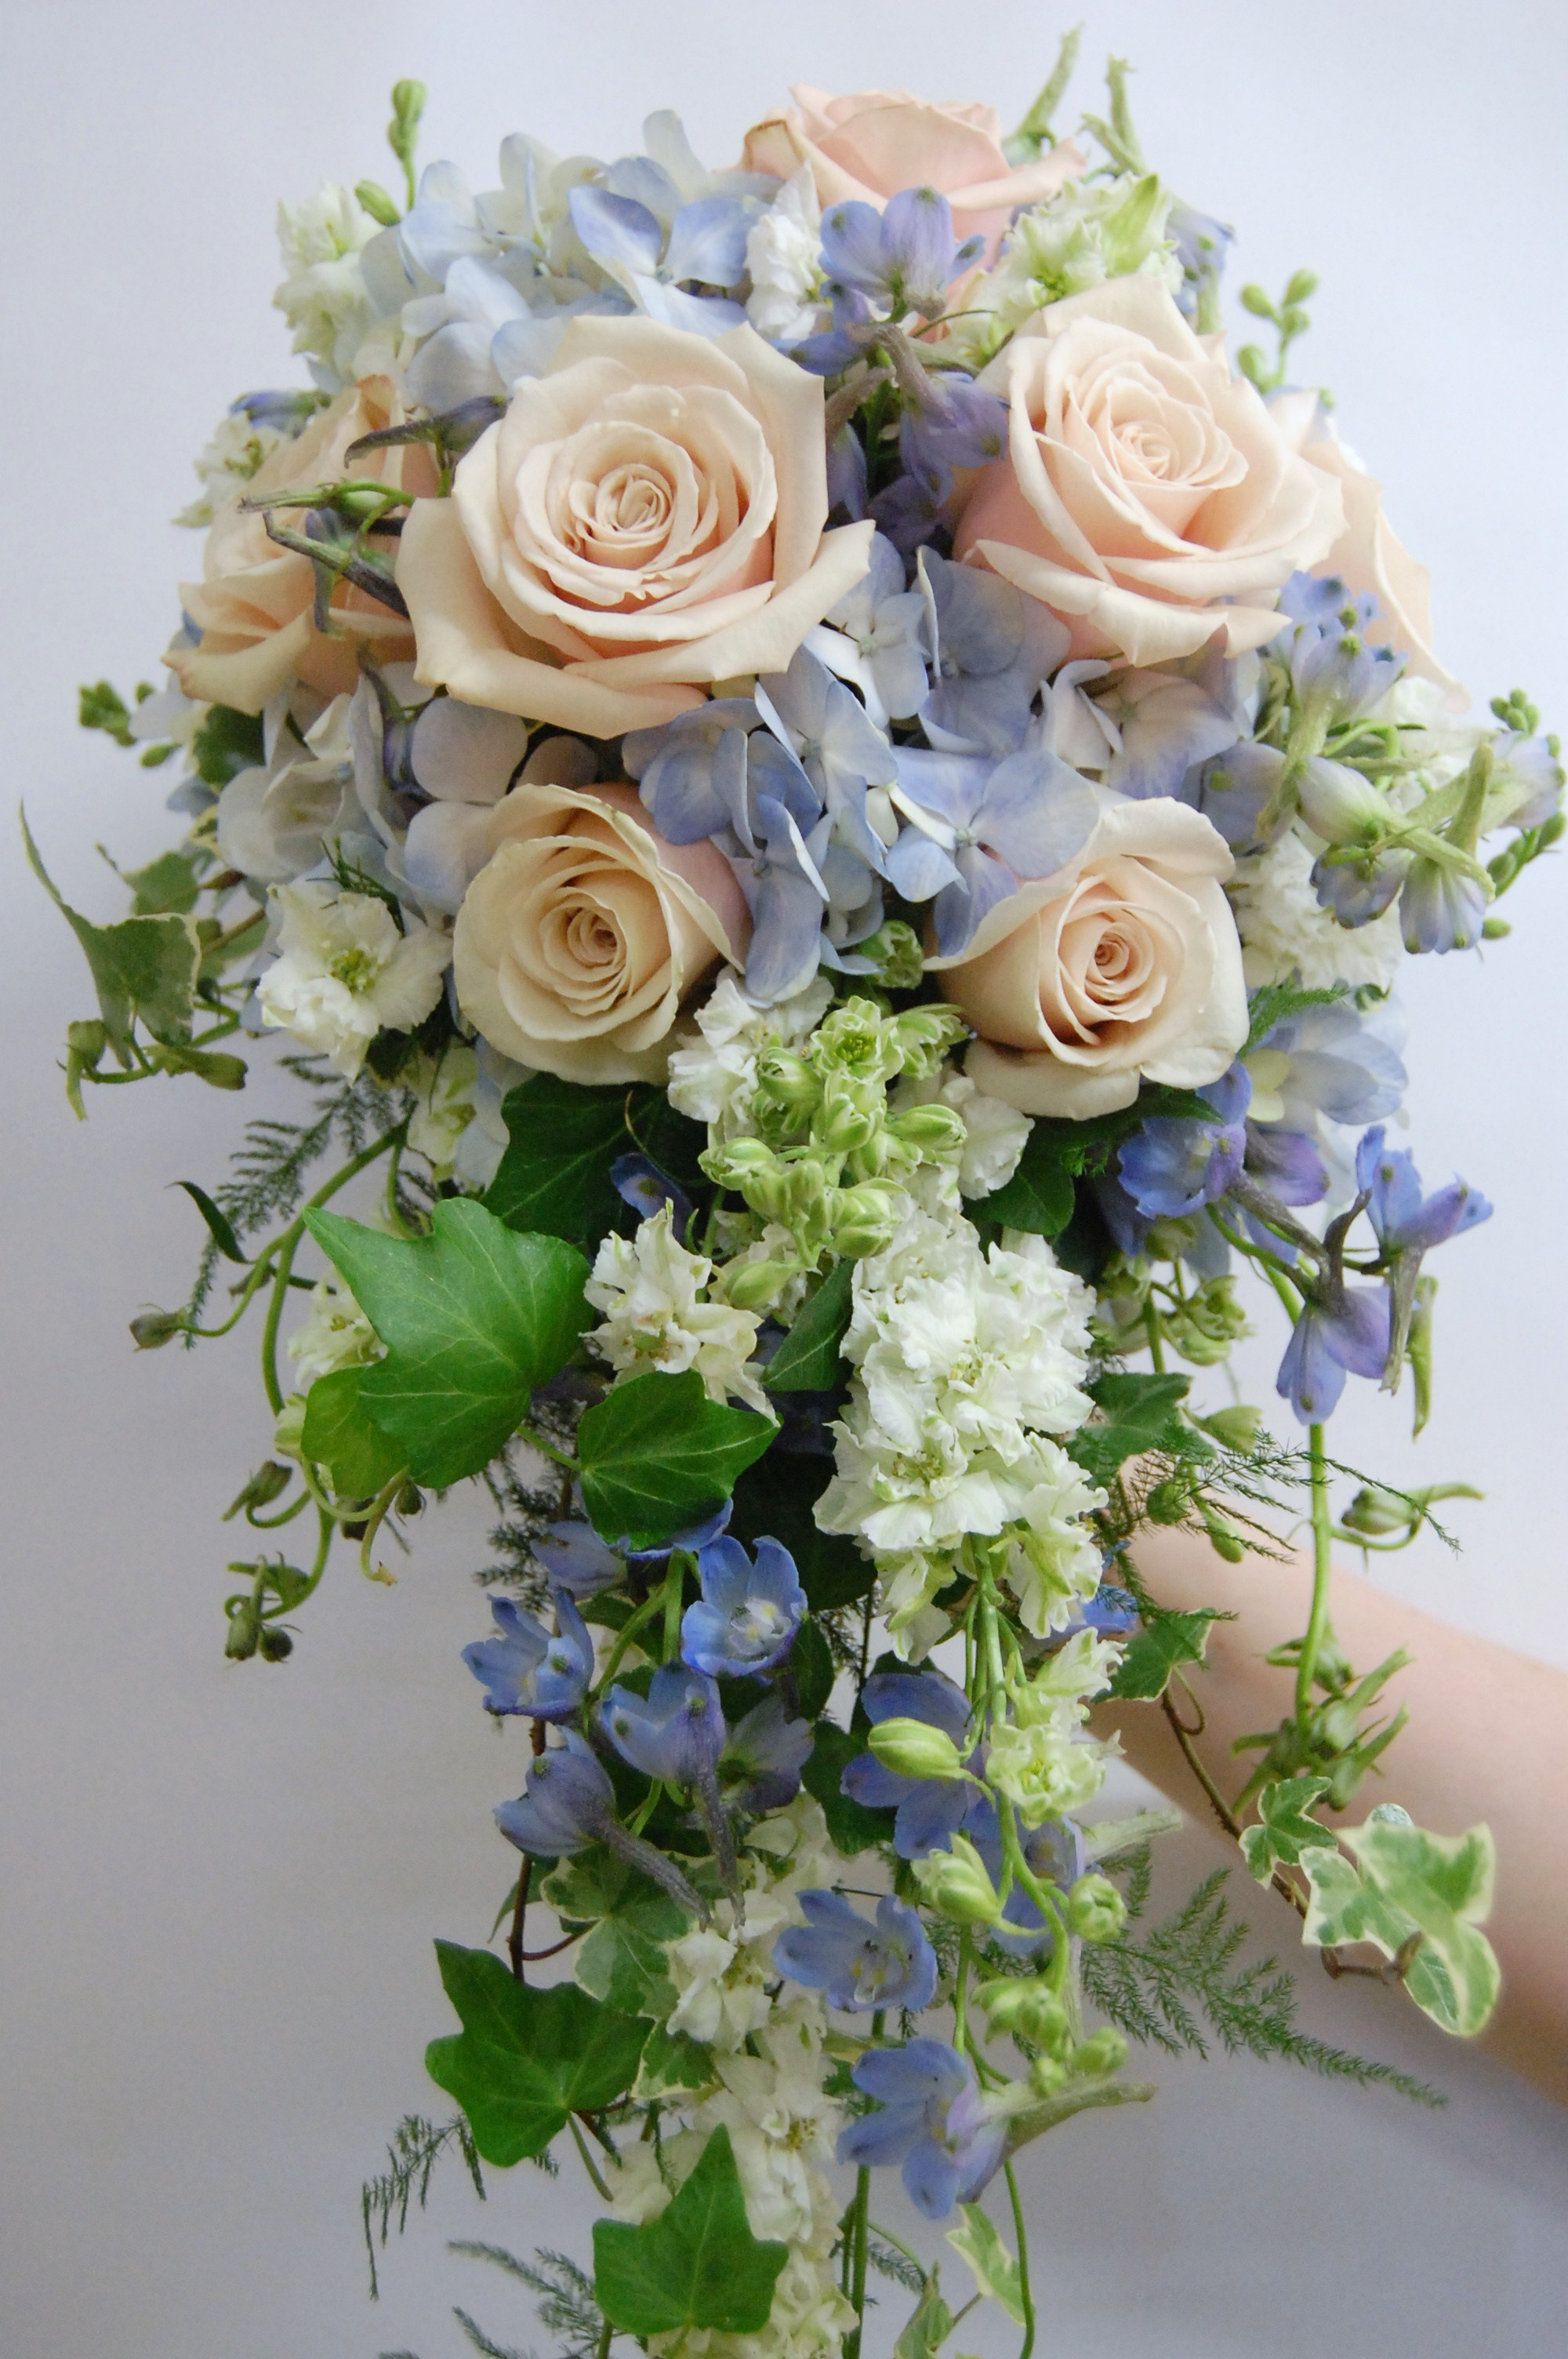 Cascade style- Sahara roses, blue hydrangea, delphinium and white larkspur